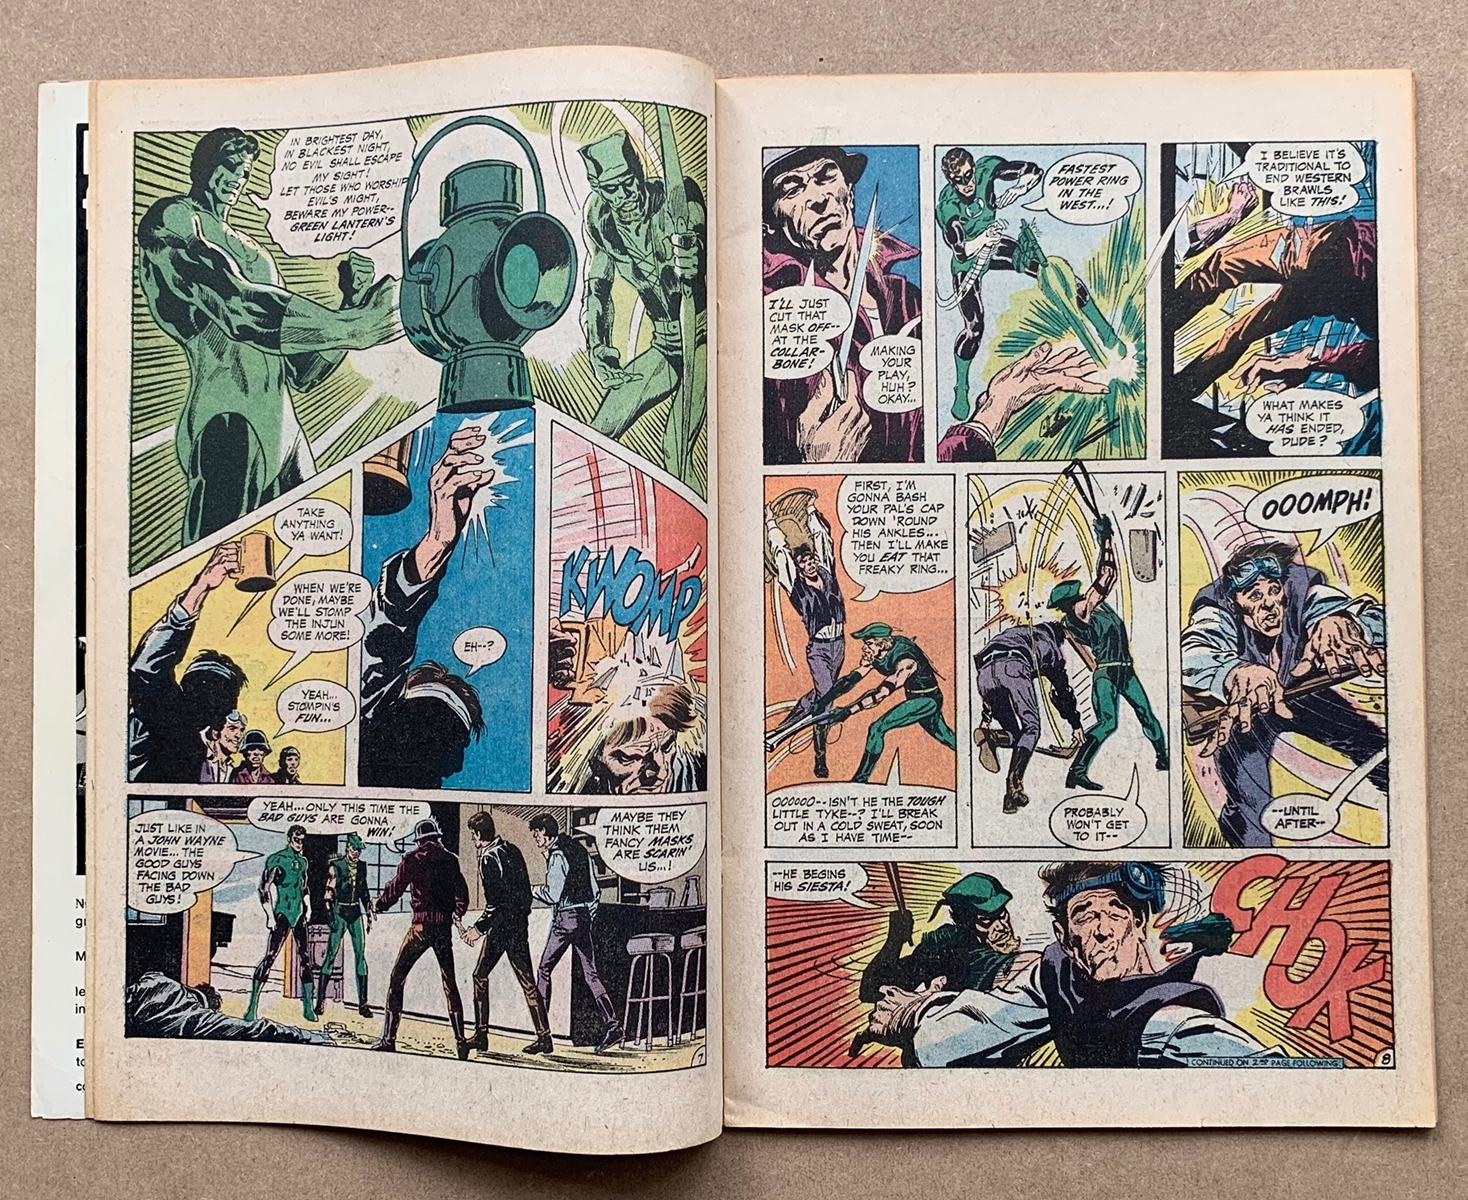 Lot 2118 - GREEN LANTERN #78 (1970 - DC) VFN (Cents Copy/Pence Stamp) - Black Canary appearances begin. Neal